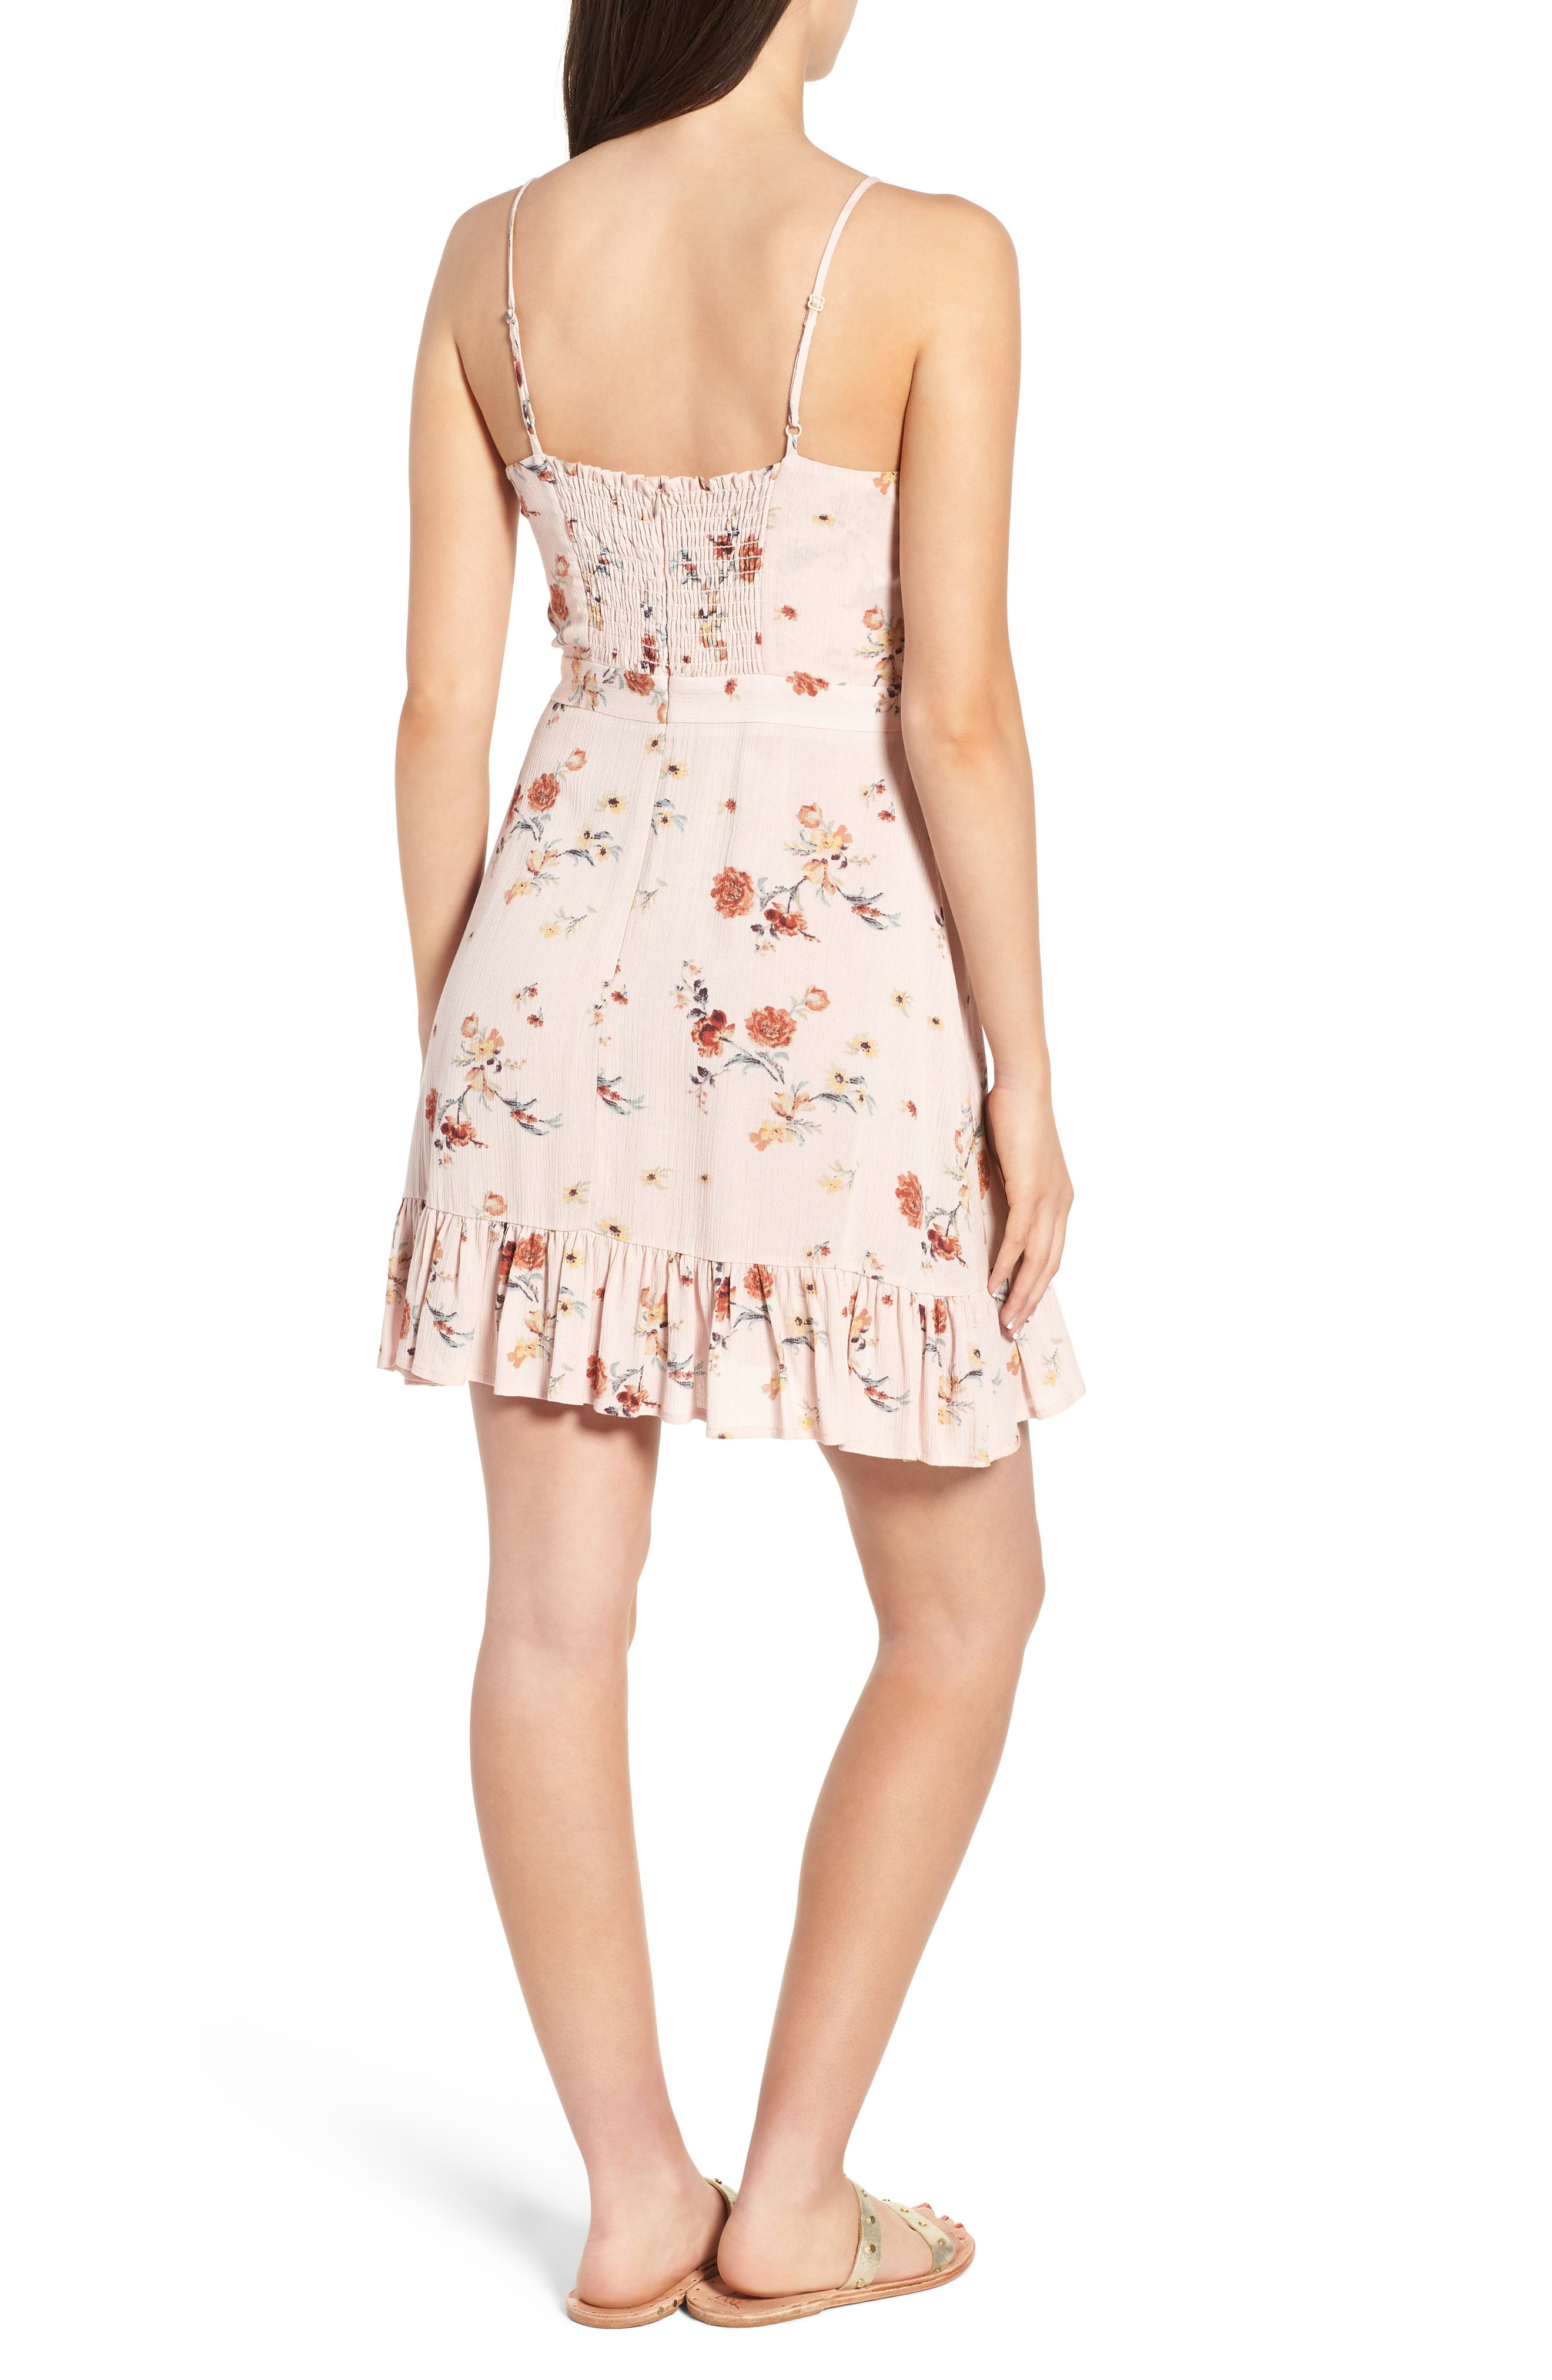 LOST + WANDER,                             Rosa Floral Tie Front Minidress,                             Alternate thumbnail 2, color,                             650